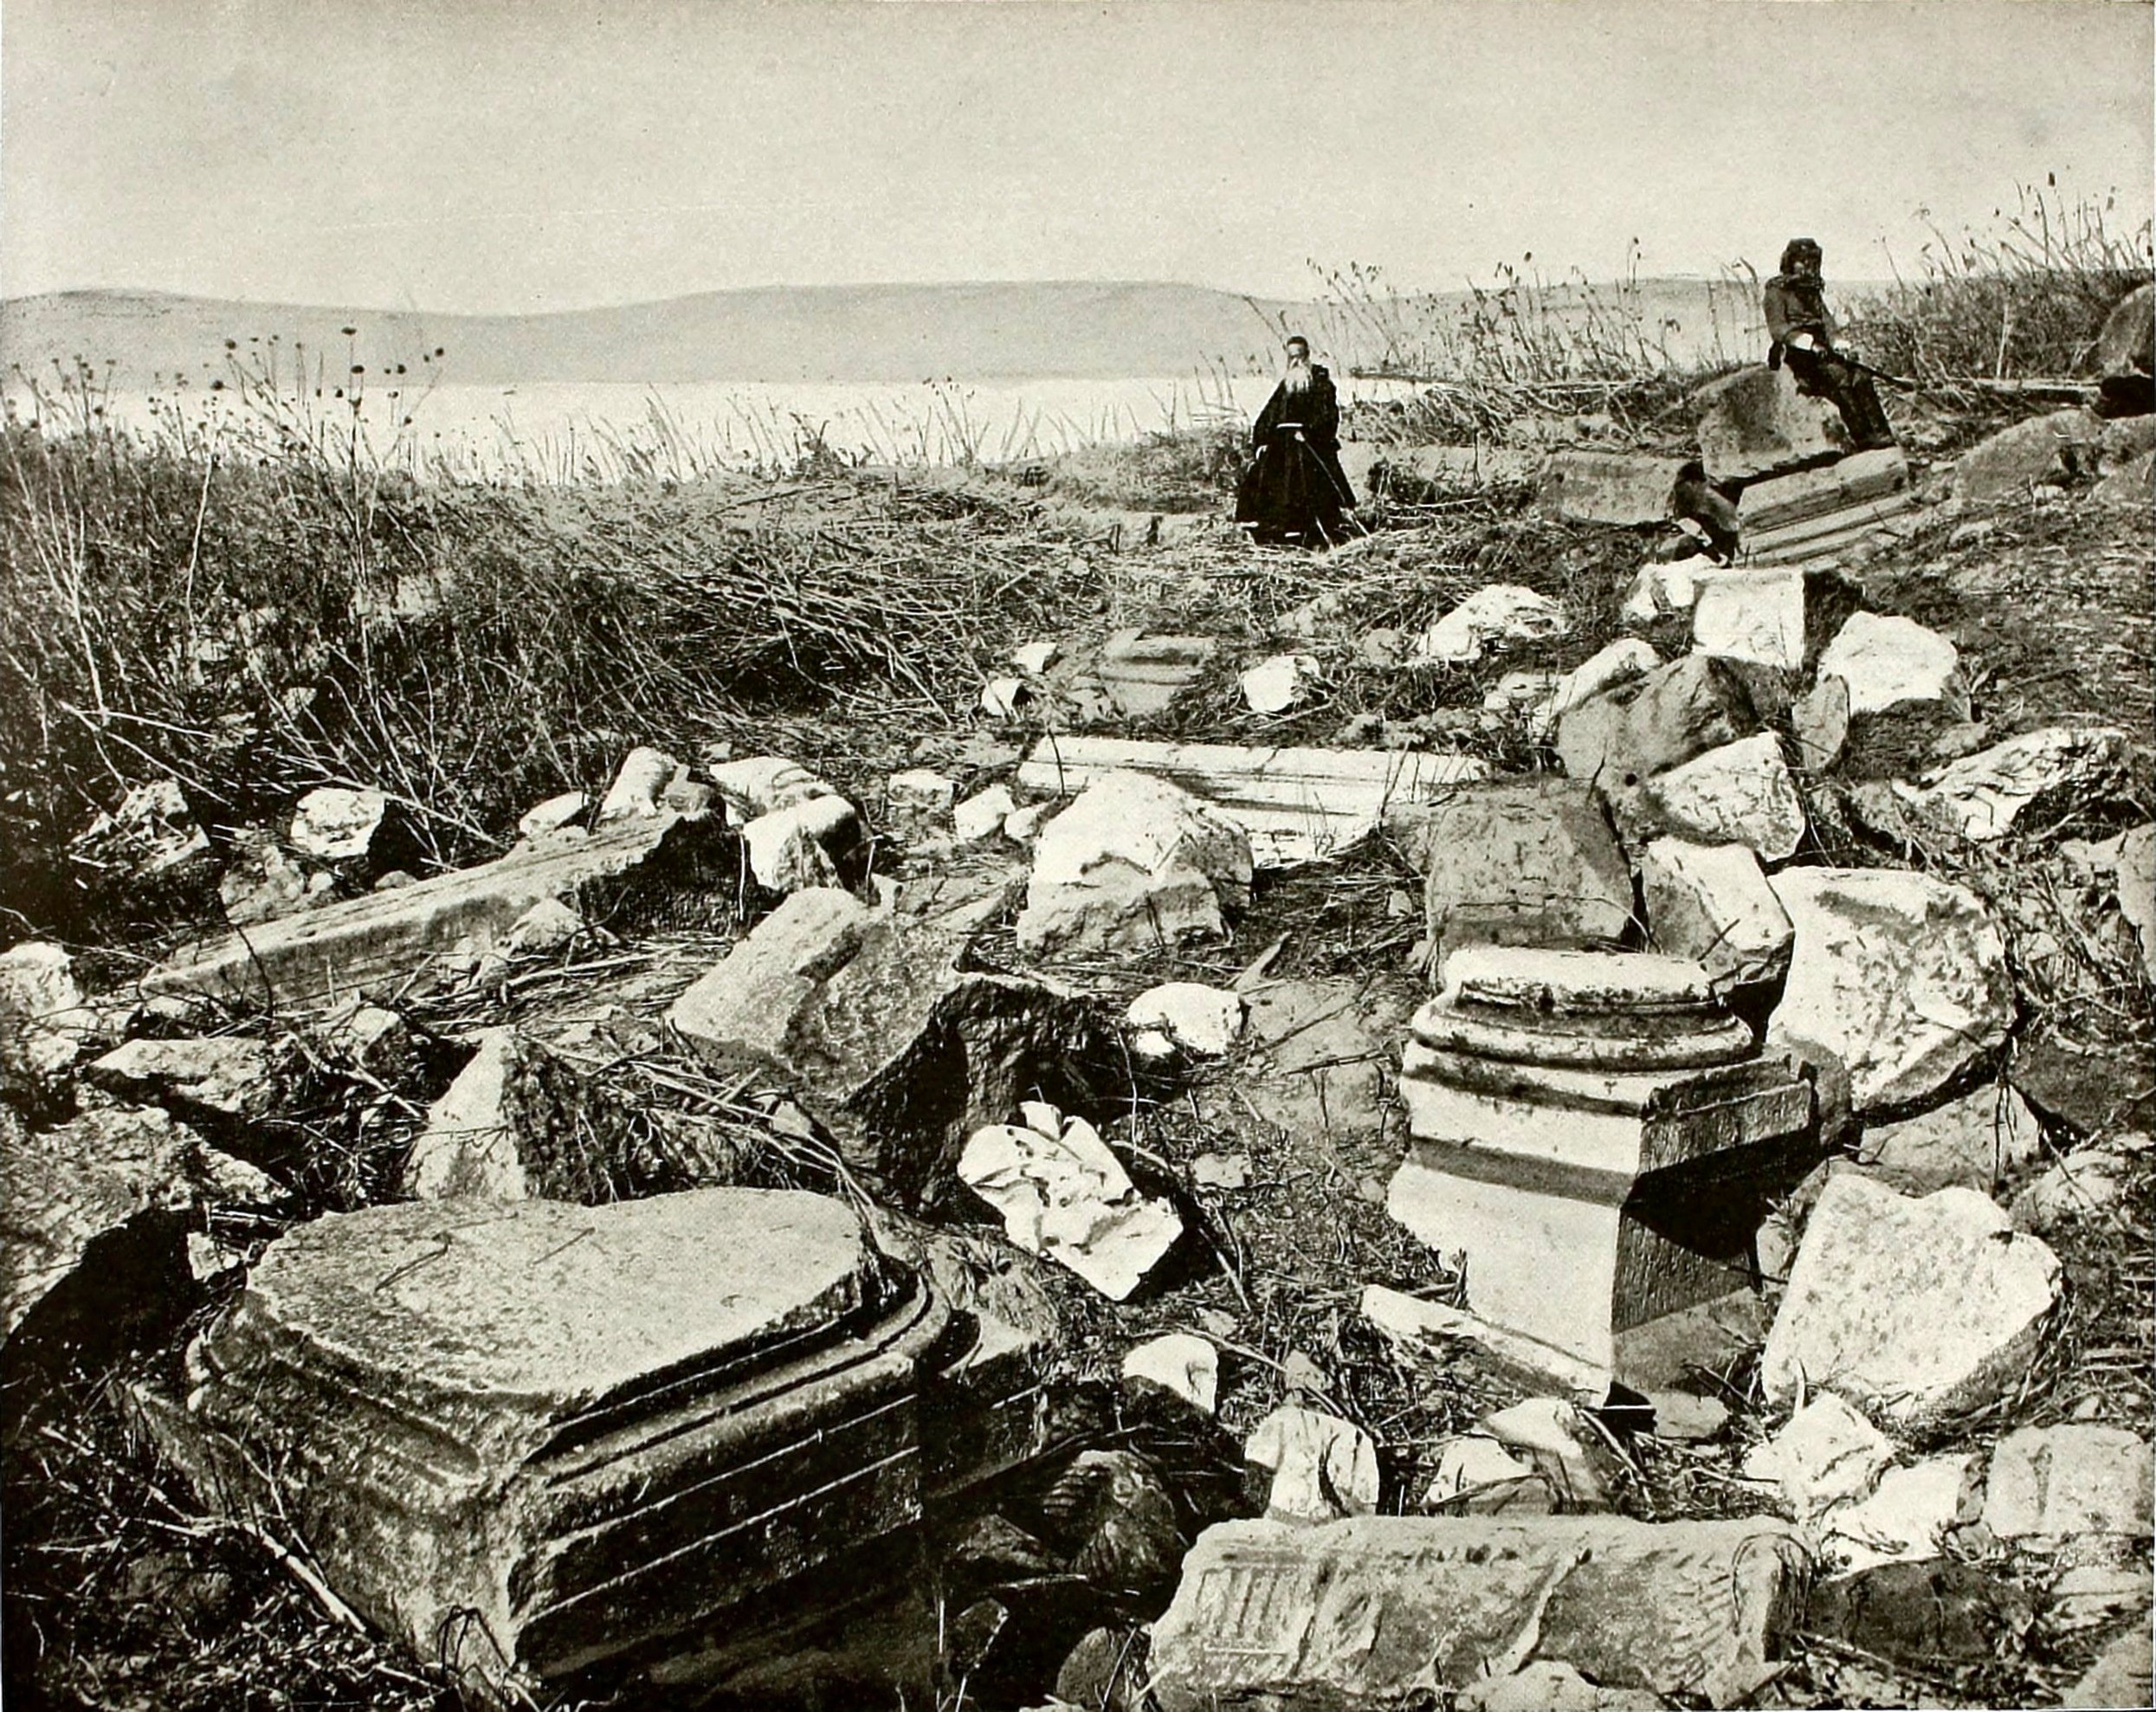 Capernaum, Sea of Galilee Israel about 1892